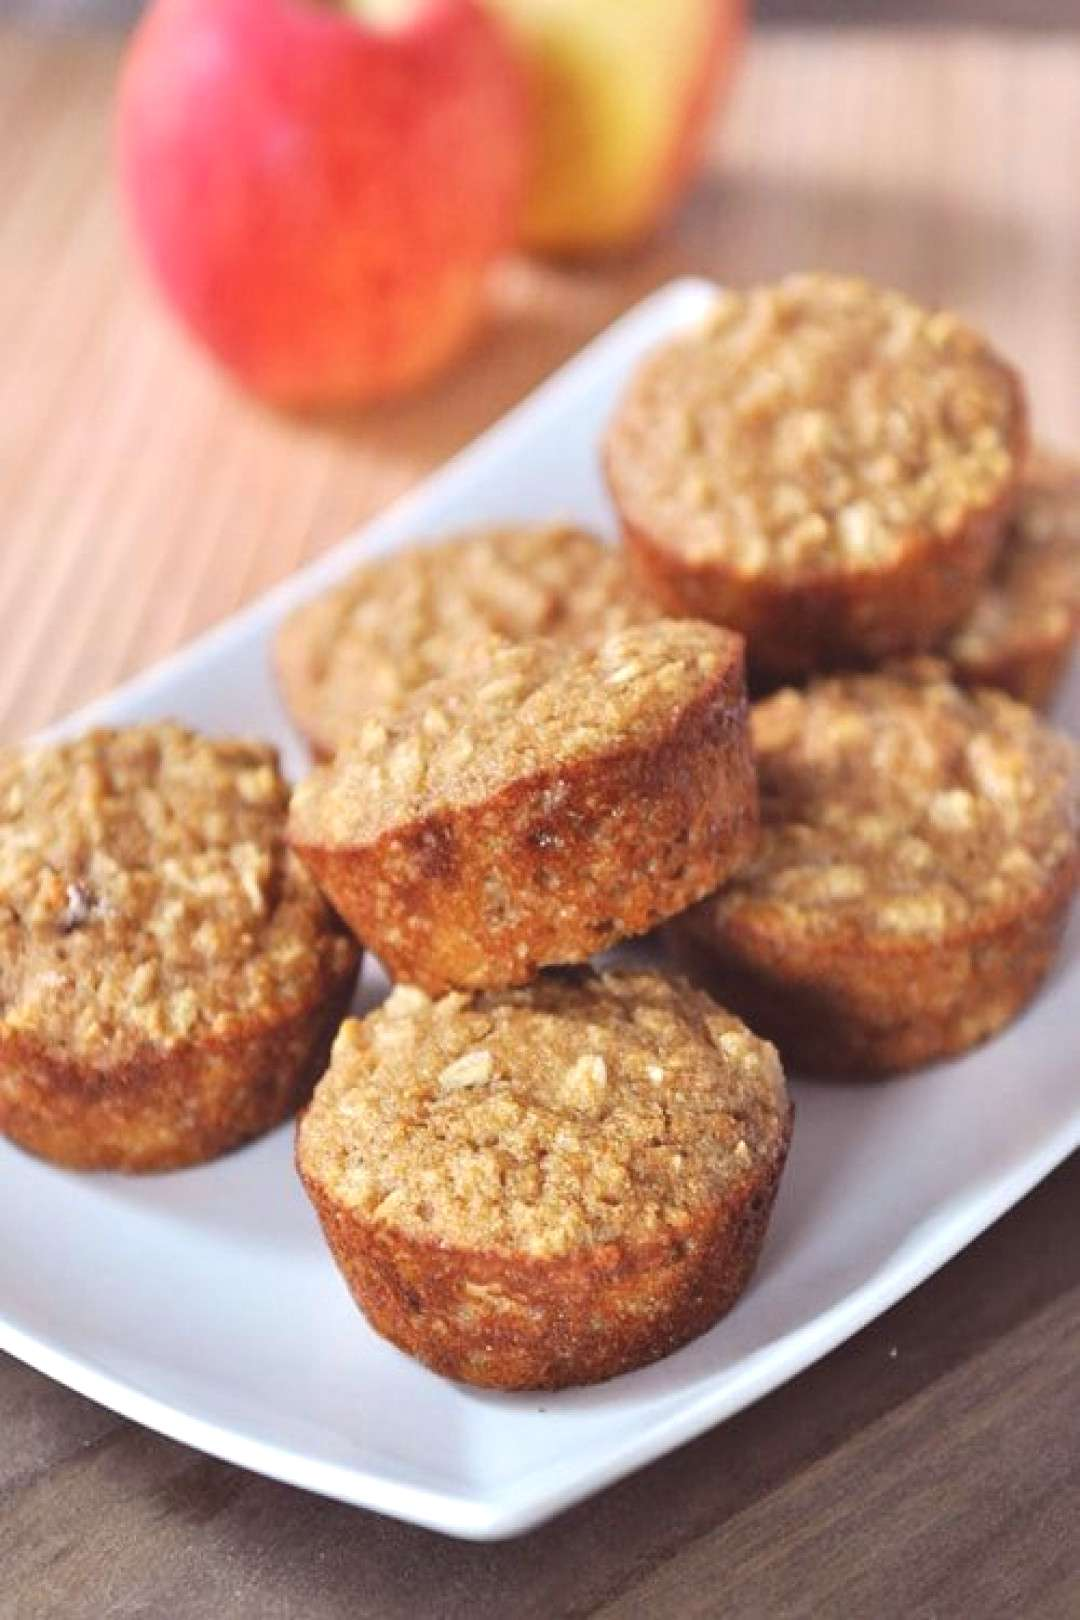 Not only are these oats and applesauce muffins healthy, but they are also moist, very delicious, an